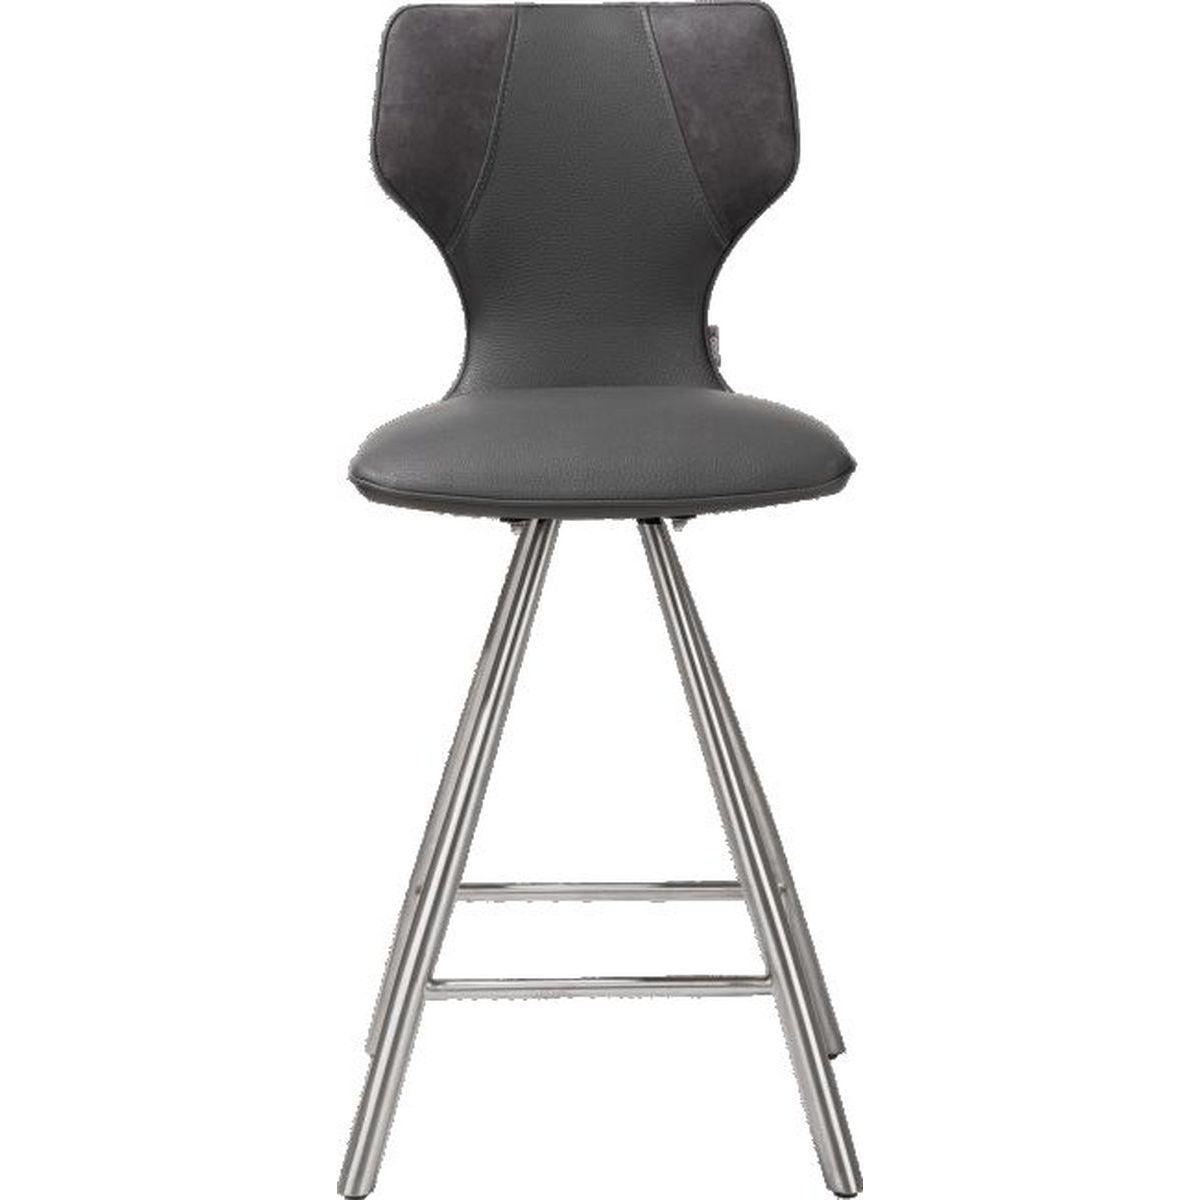 Chaise de bar SCOUT Xooon anthracite